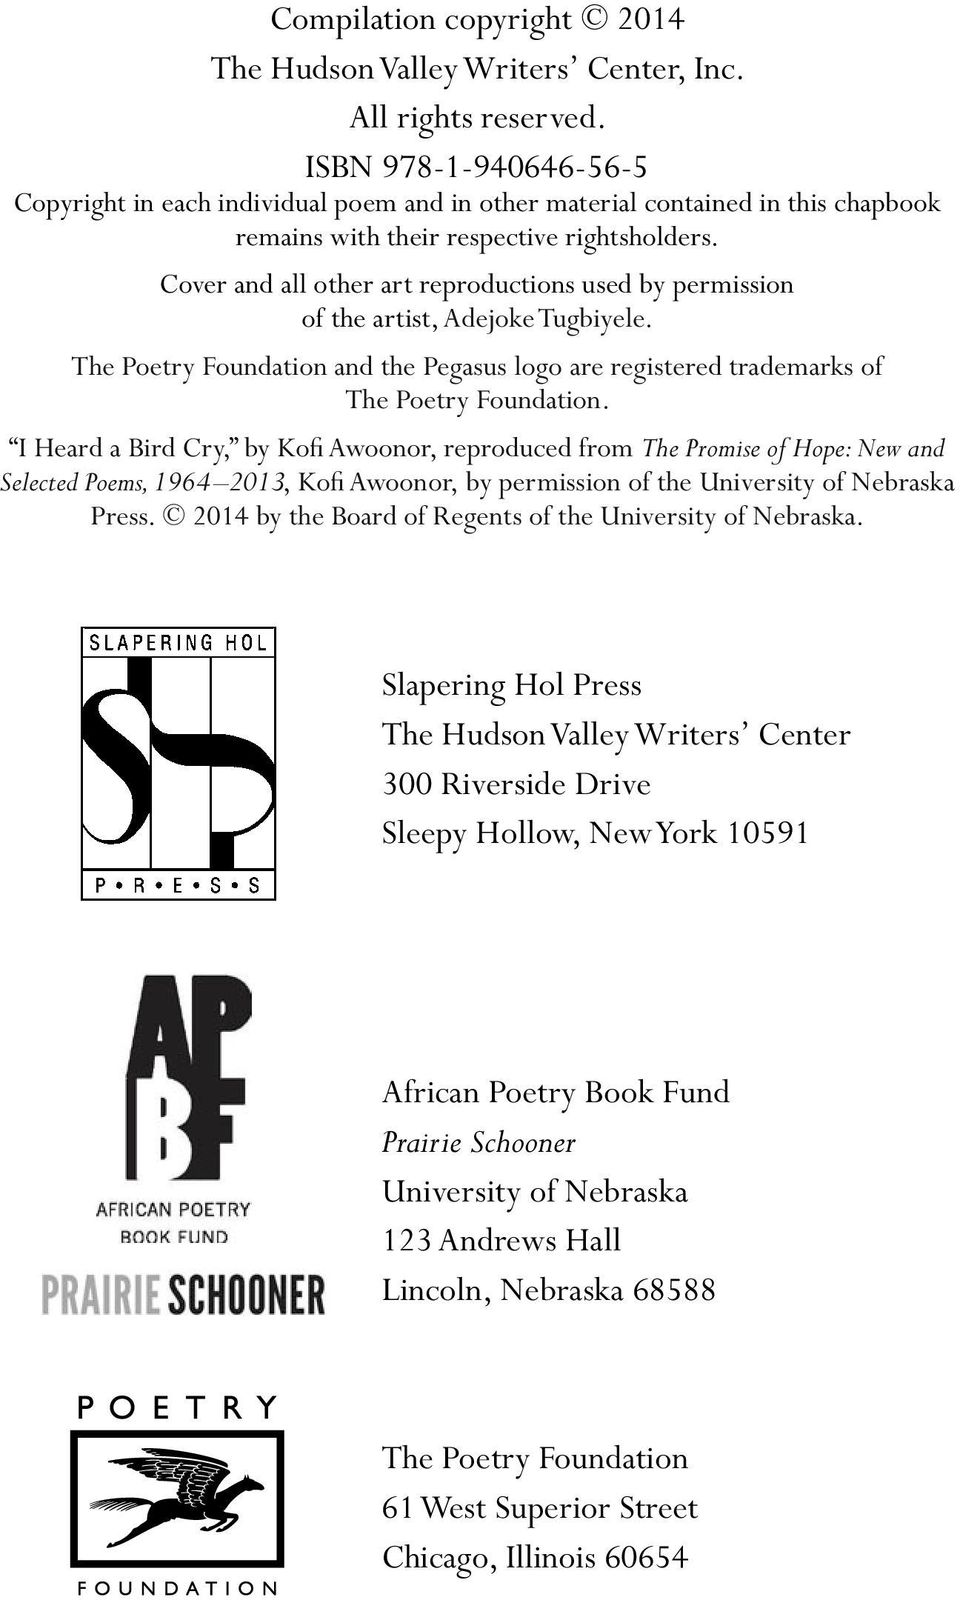 Cover and all other art reproductions used by permission of the artist, Adejoke Tugbiyele. The Poetry Foundation and the Pegasus logo are registered trademarks of The Poetry Foundation.